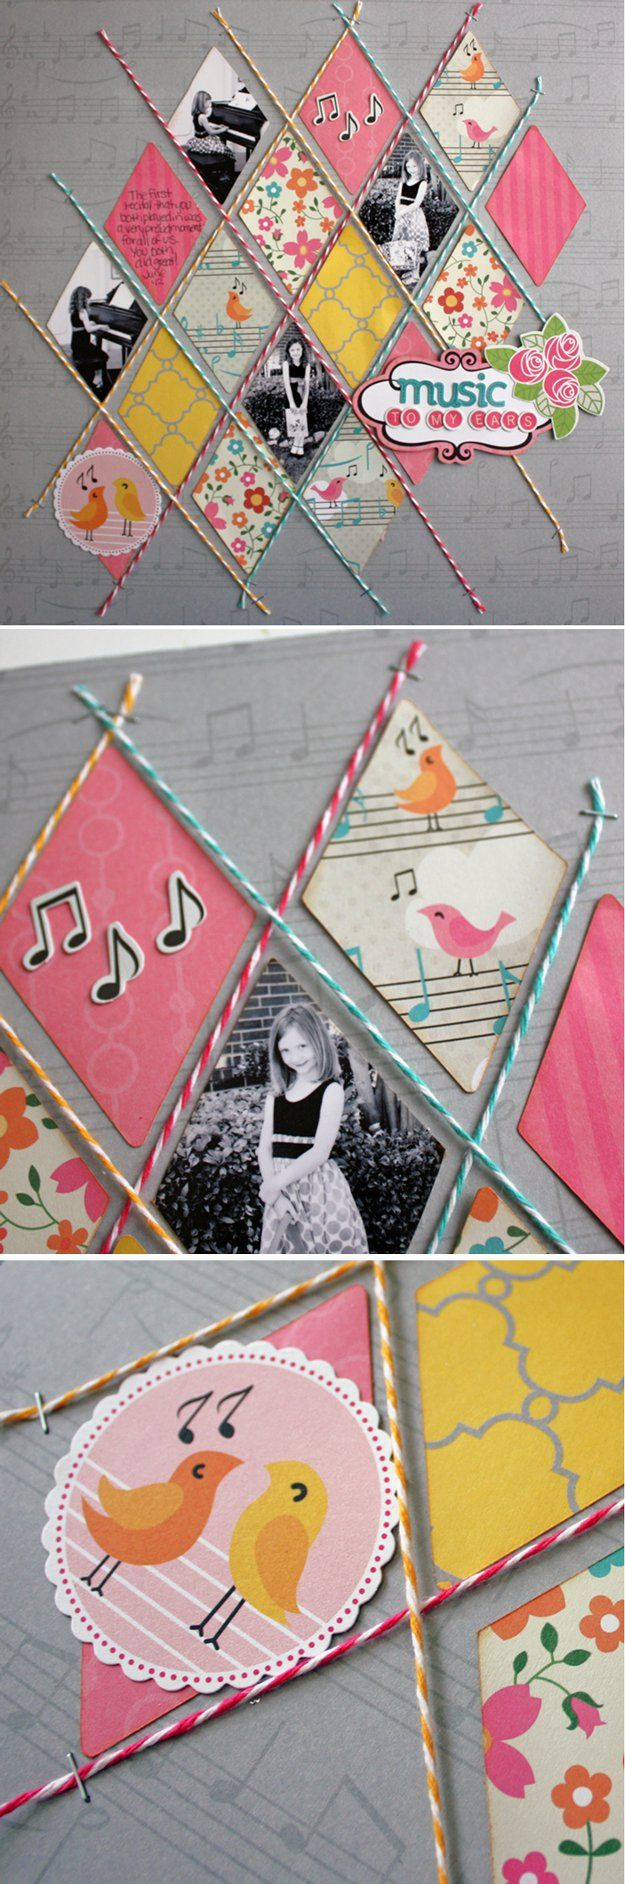 33 creative scrapbook ideas every crafter should know diy projects - 33 Creative Scrapbook Ideas Every Crafter Should Know